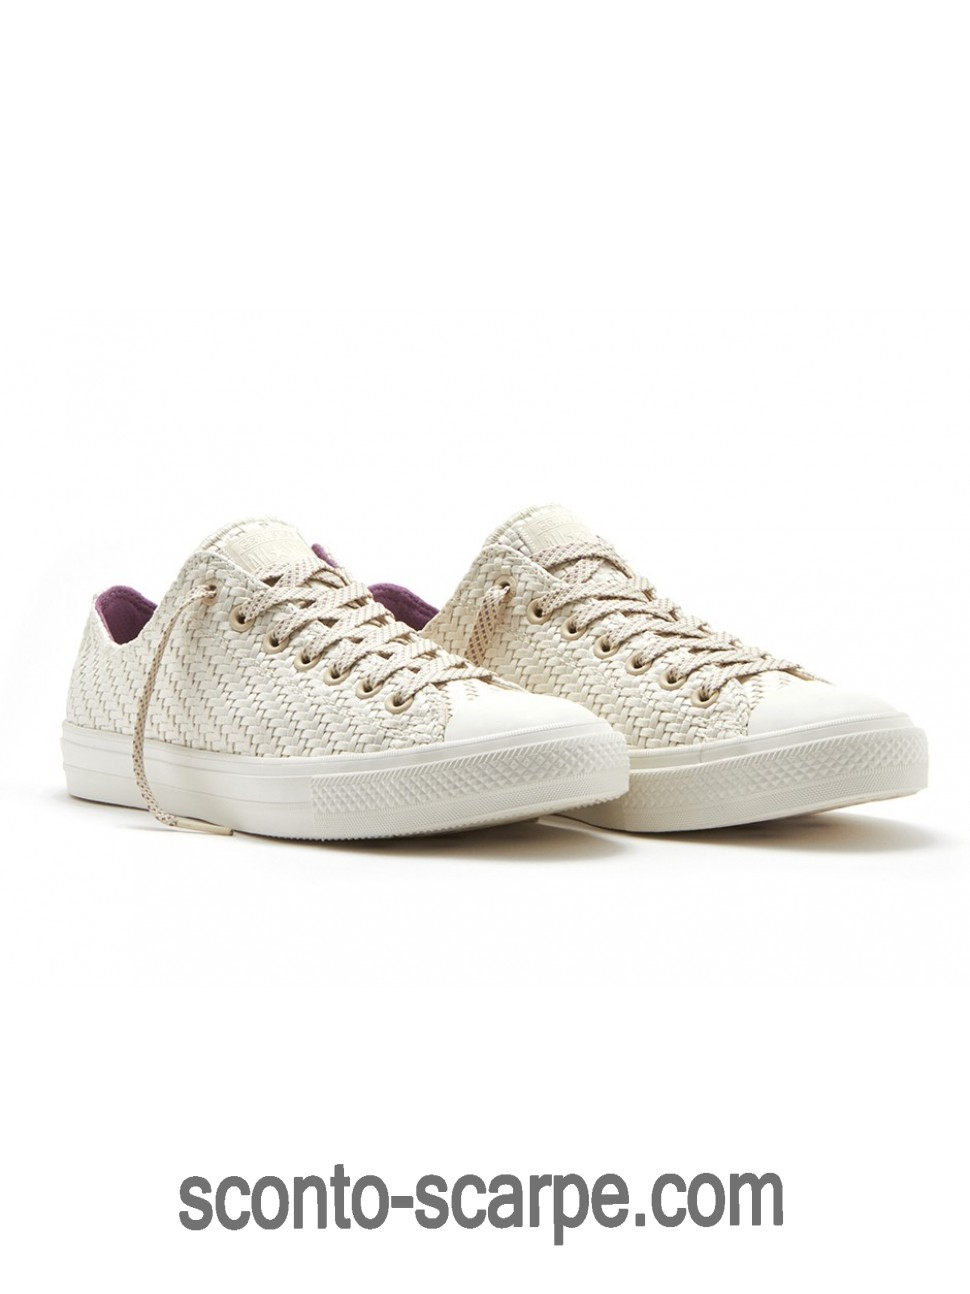 Converse Easter Chuck Taylor Low Woven Beige Purpureo Gialle Elenco Sconti